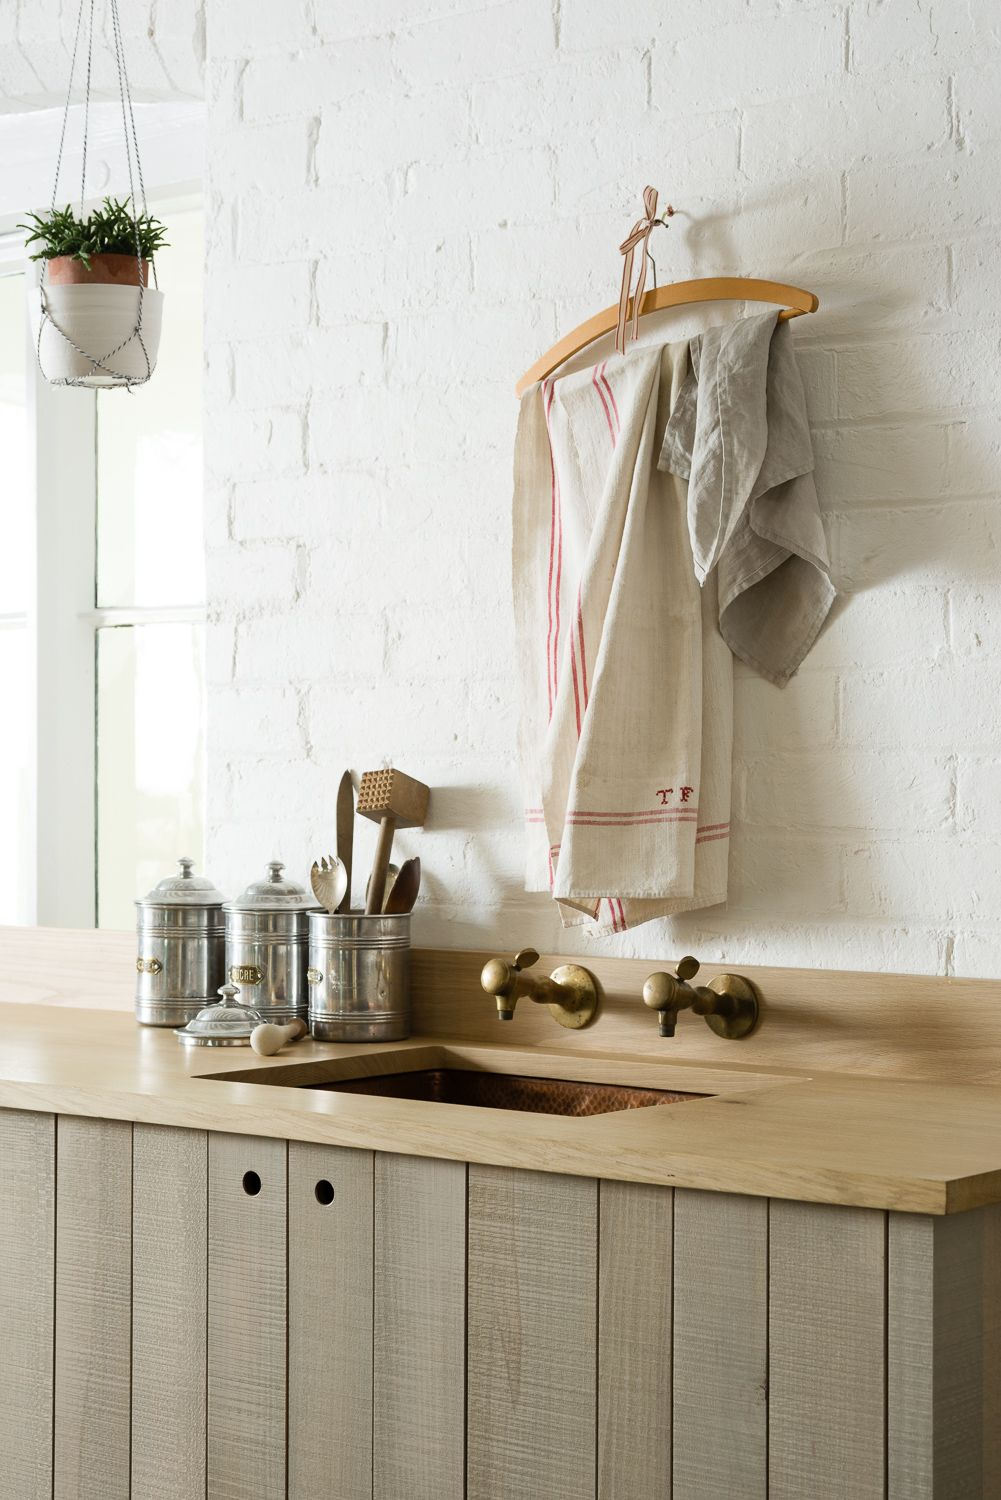 The Sebastian Cox Kitchen by deVOL, at our beautiful Cotes Mill home ...